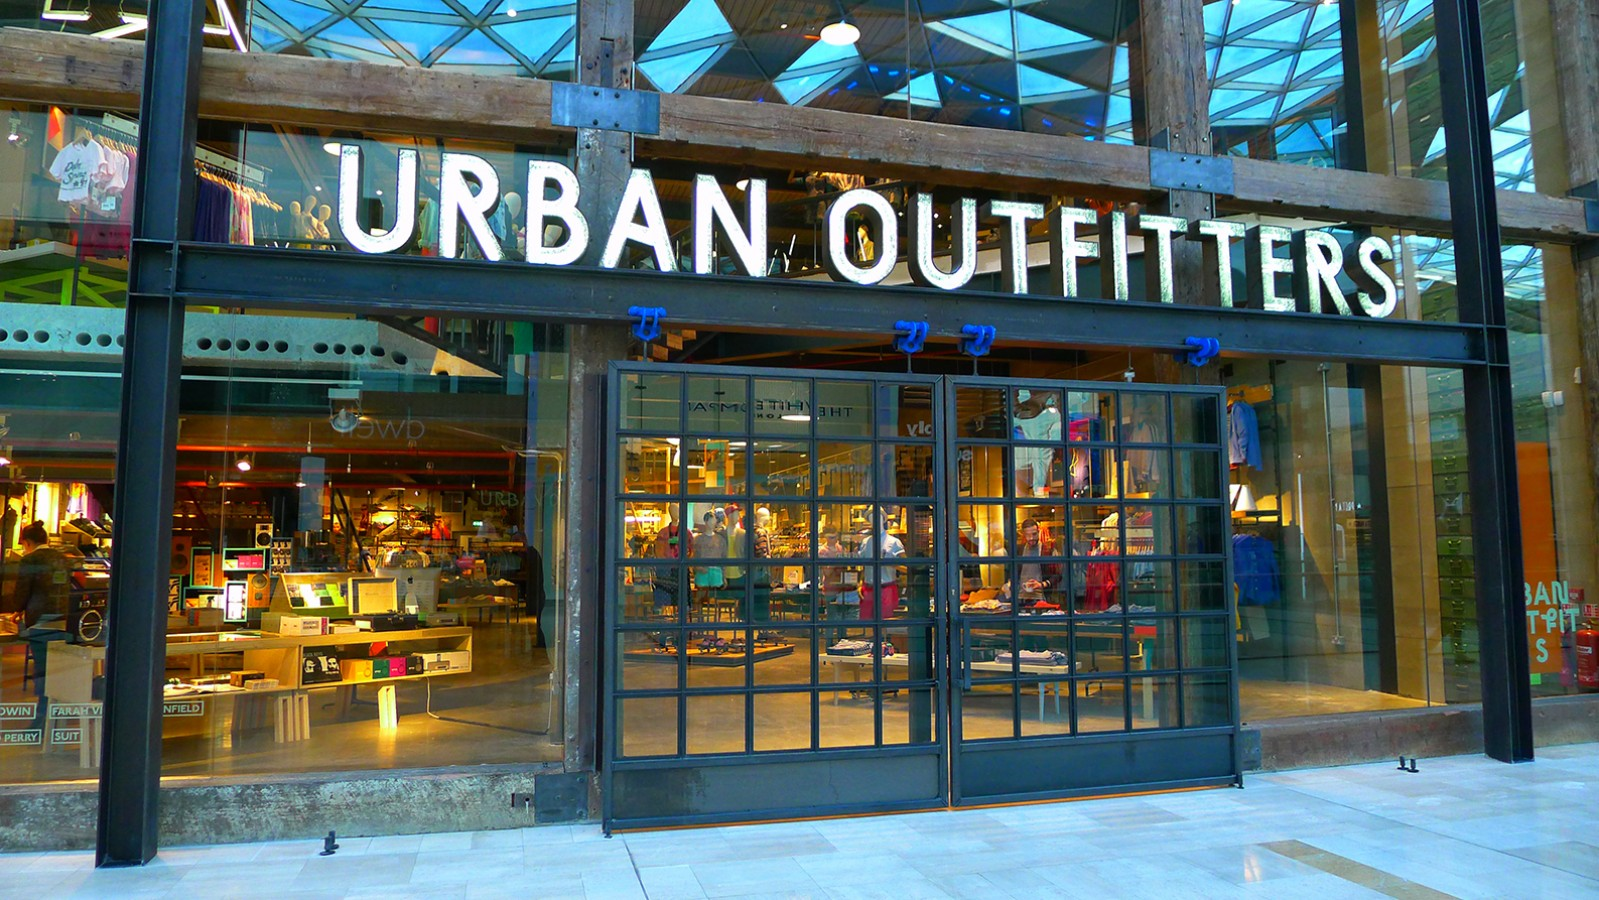 Urban outfitters mccue crafted fit bespoke interior for Schaukelstuhl urban outfitters